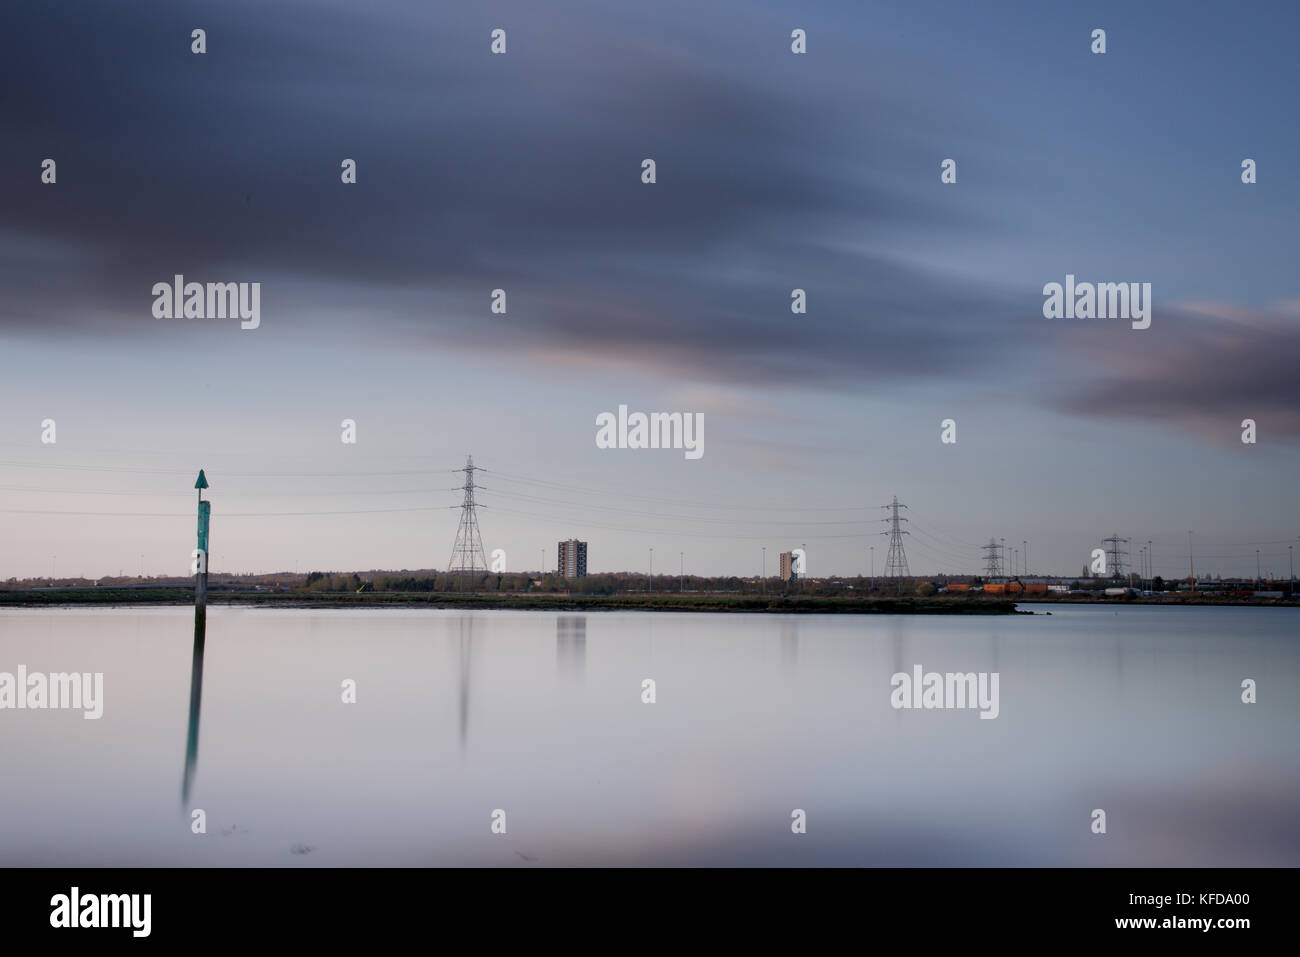 Electric Pylons in the landscape with motion blur - Stock Image